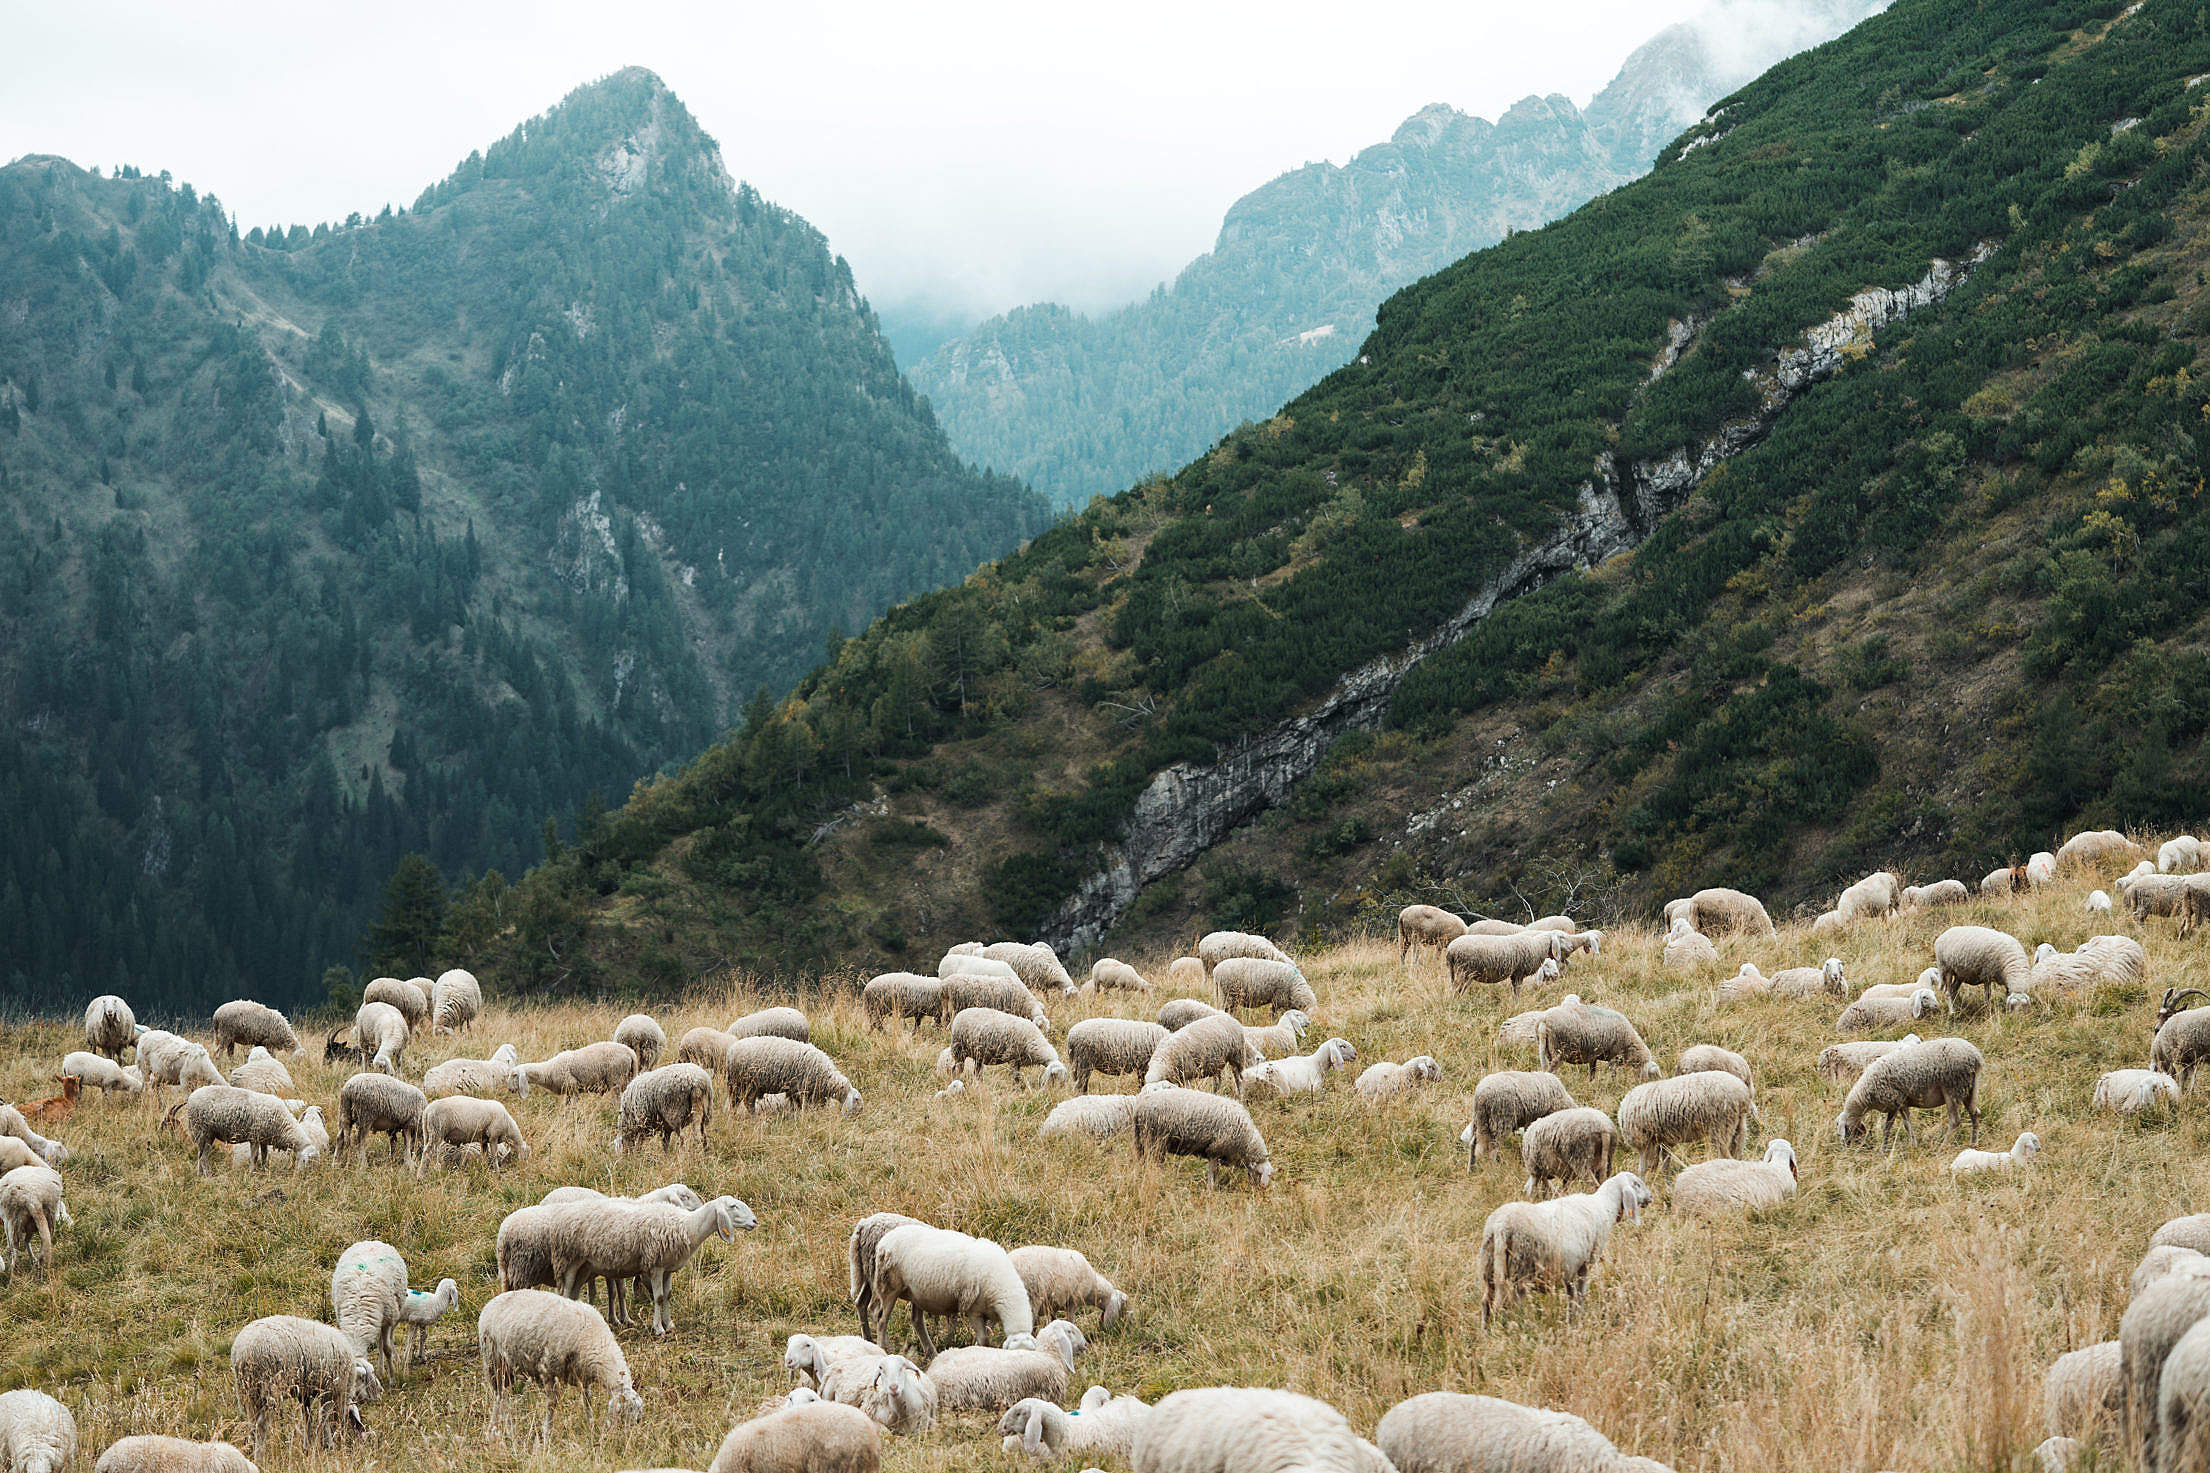 Pasture Full of Sheep in Mountains Free Stock Photo